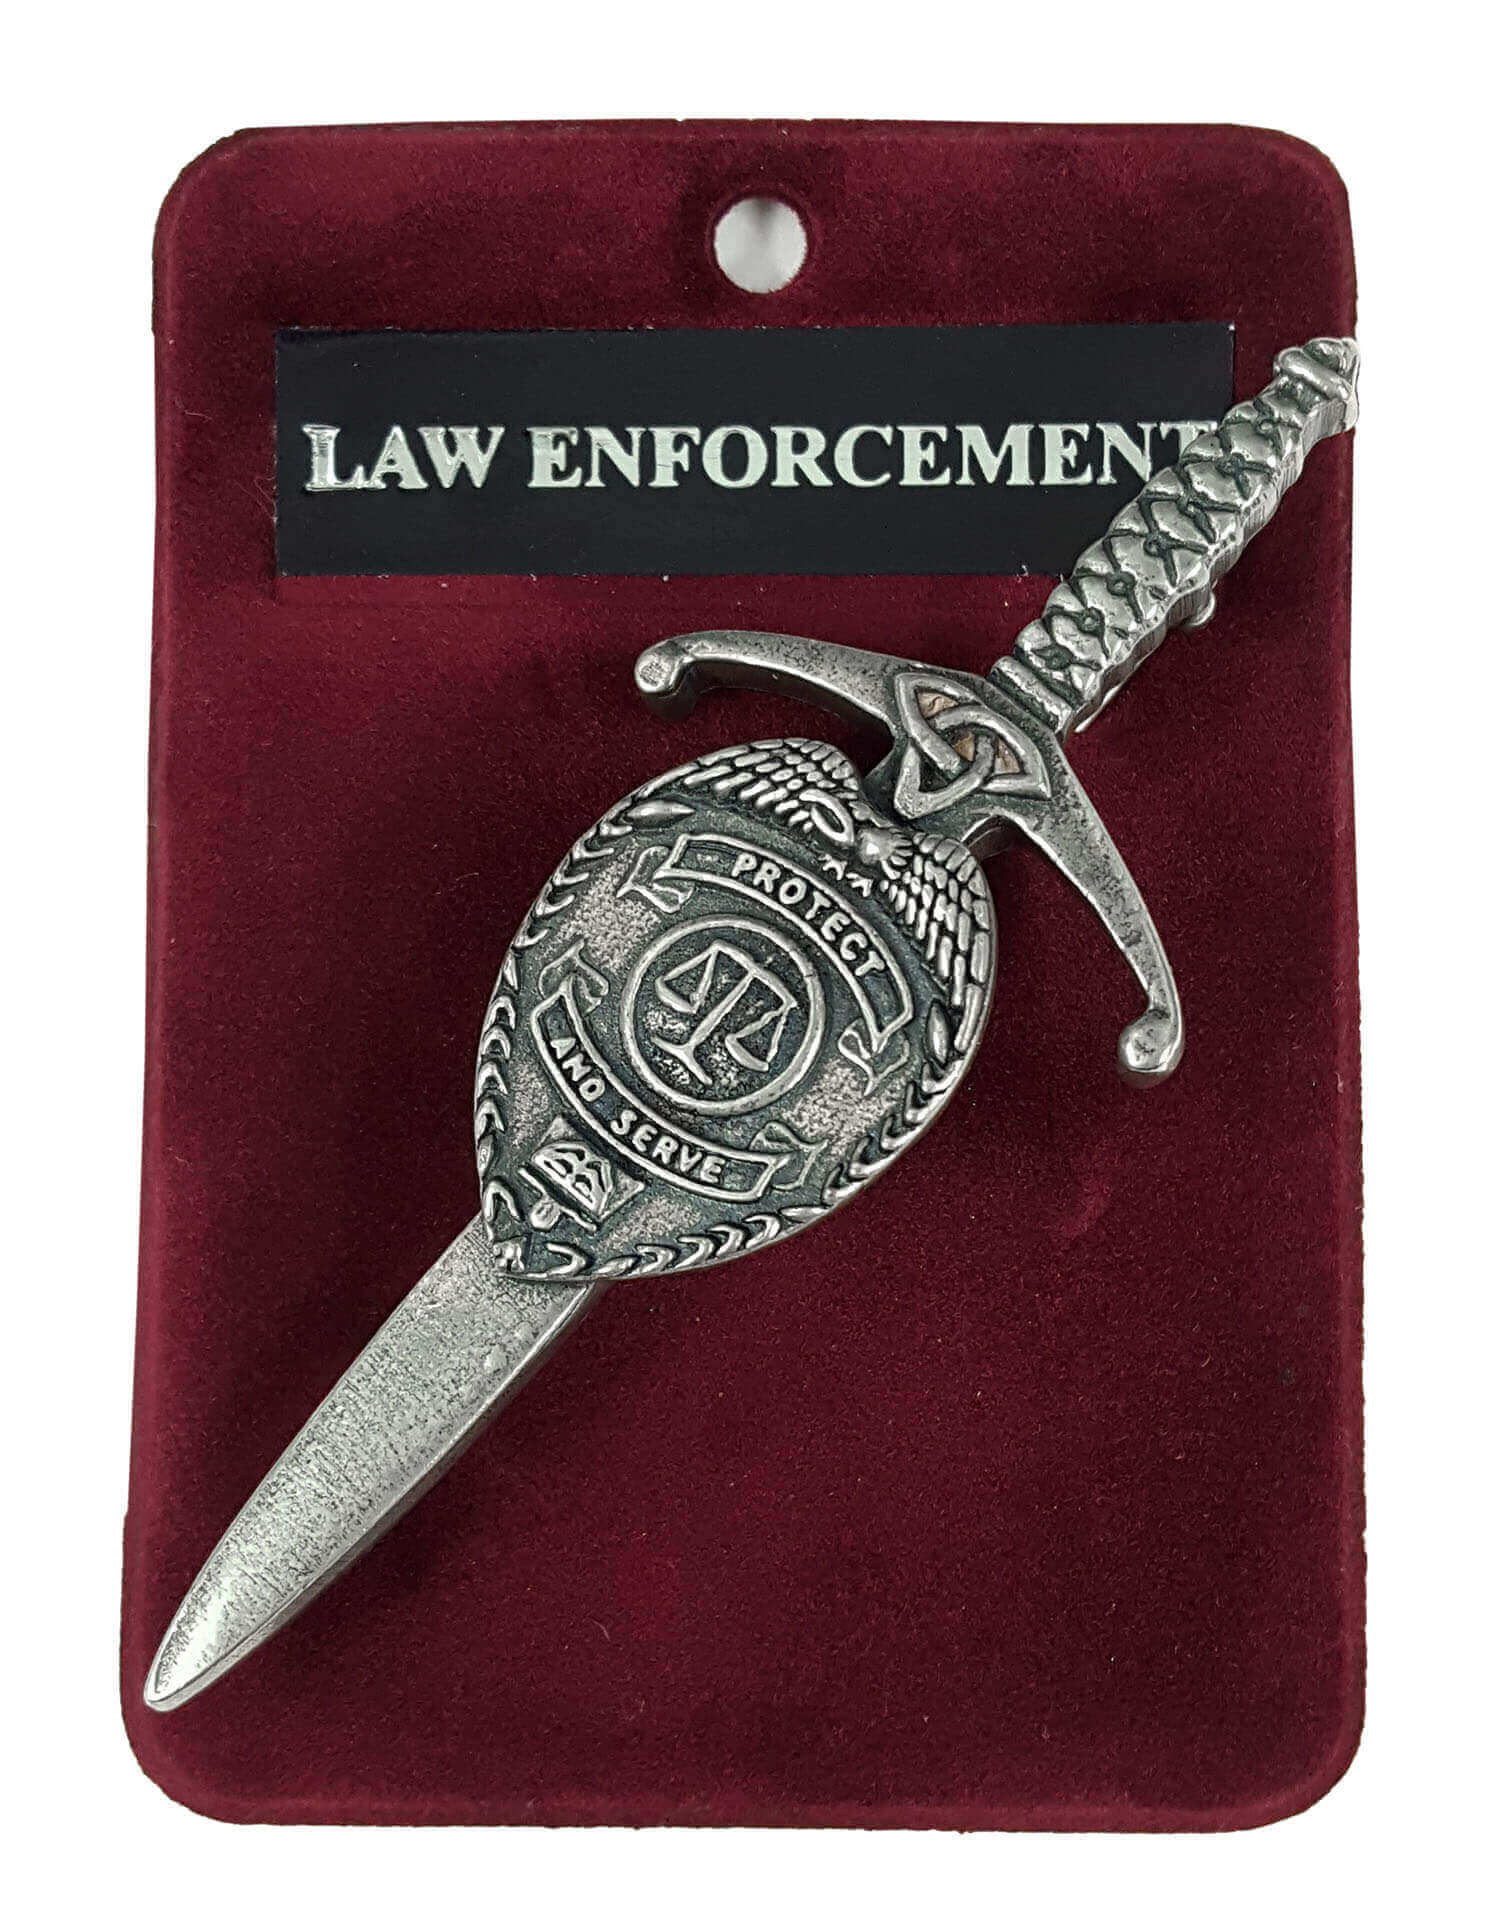 Protect and Serve Law Enforcement Kilt Pin